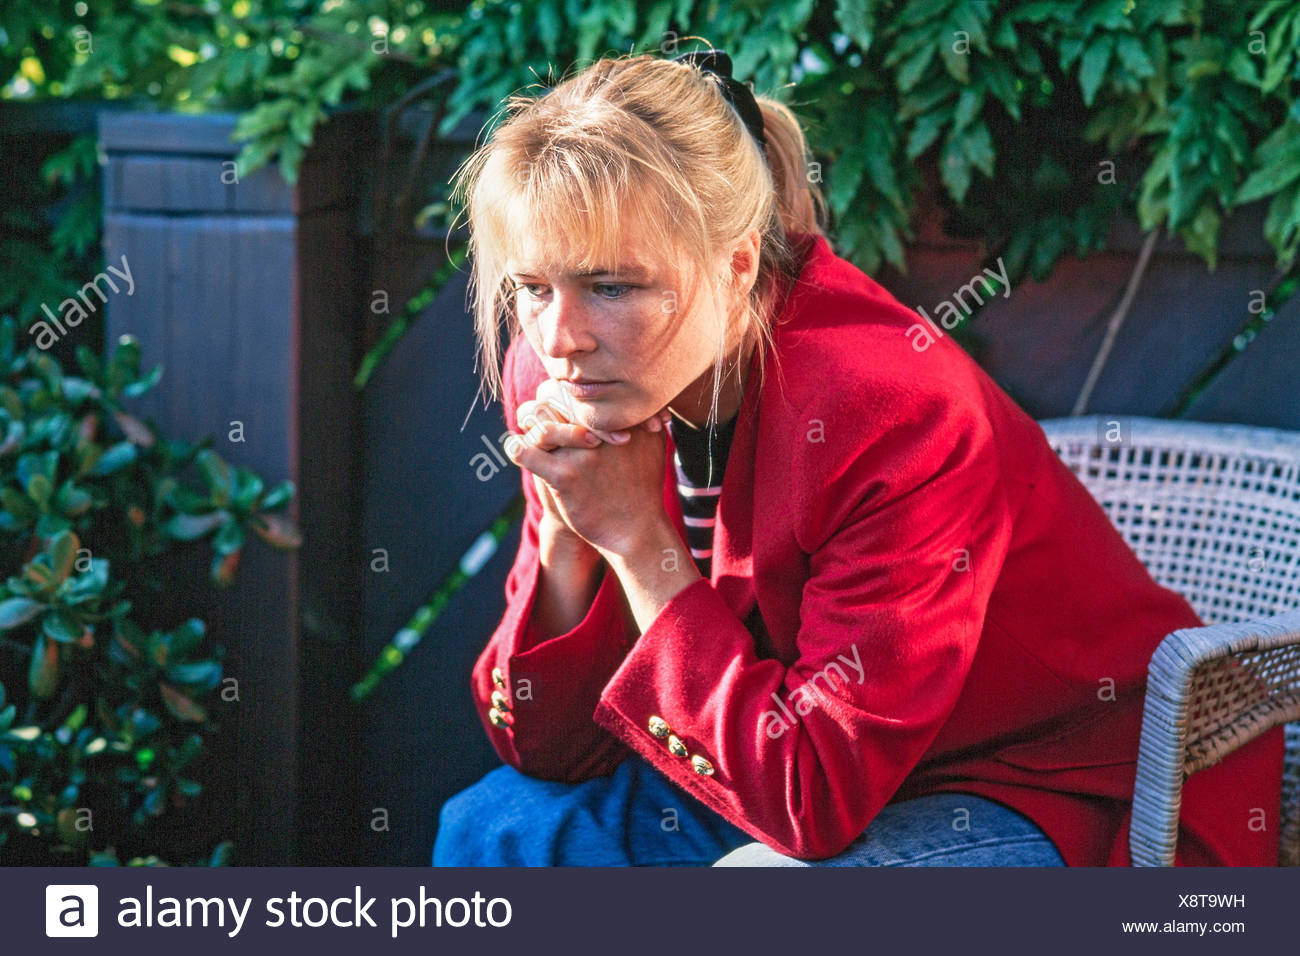 Young woman at depressive expression - Stock Image